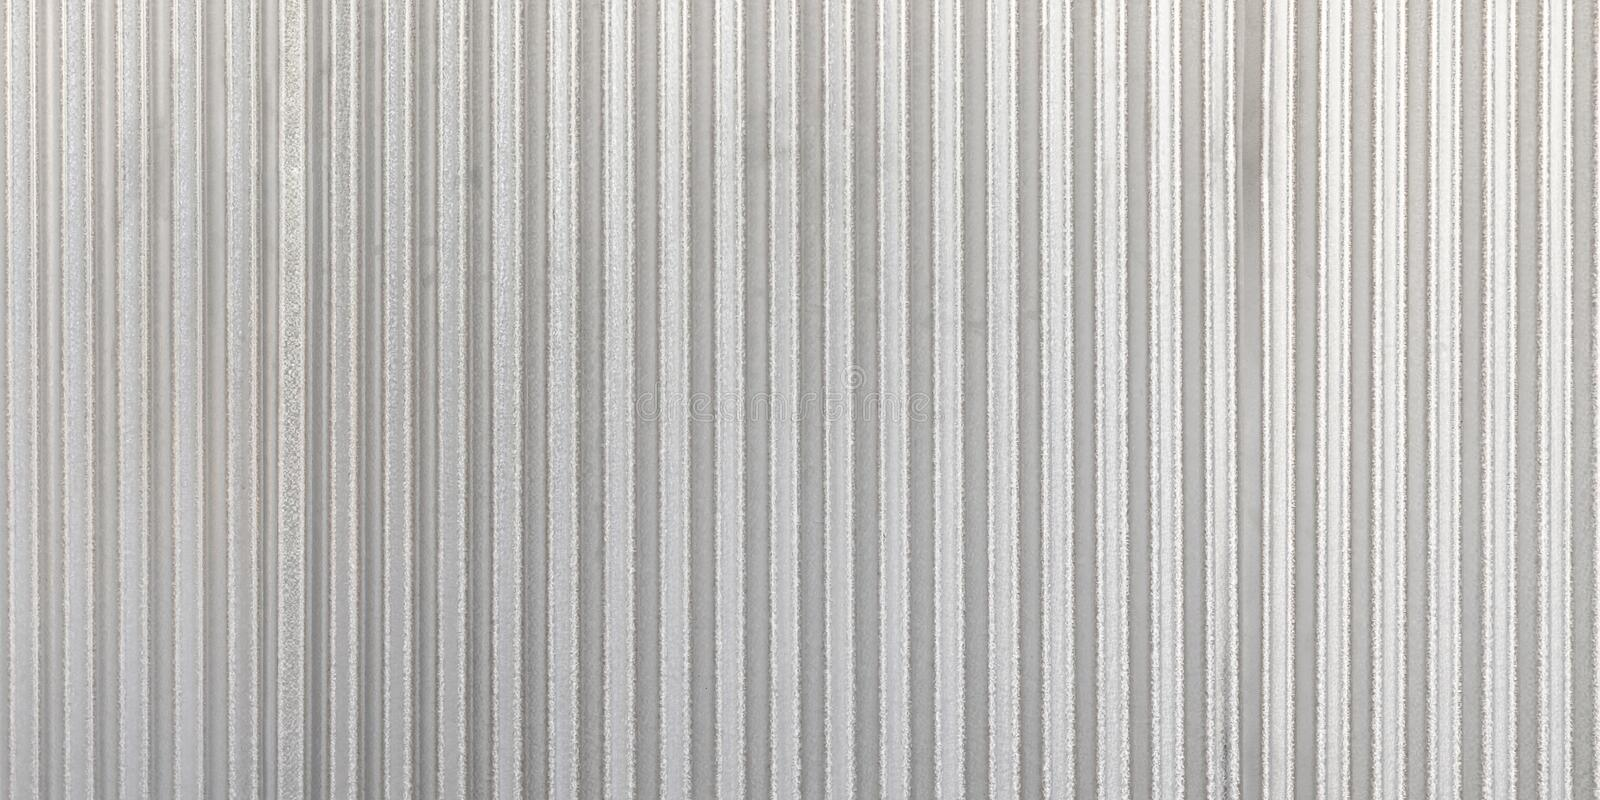 The corrugated grey metal panorama wall background. Rusty zinc grunge texture and background stock image